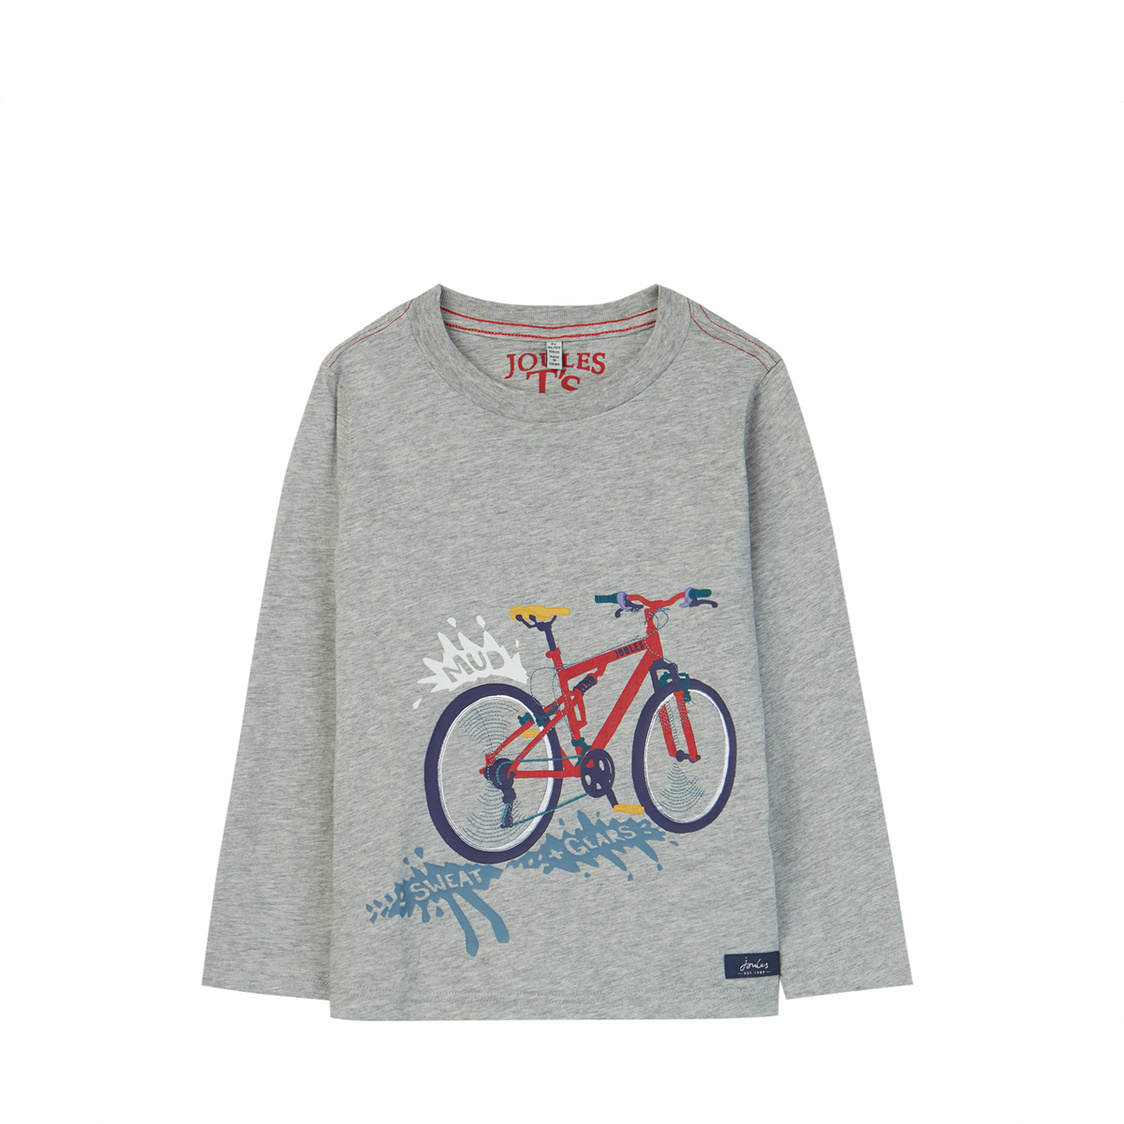 Jack Applique T-Shirt Grey Sweat And Gears 4-10 Years